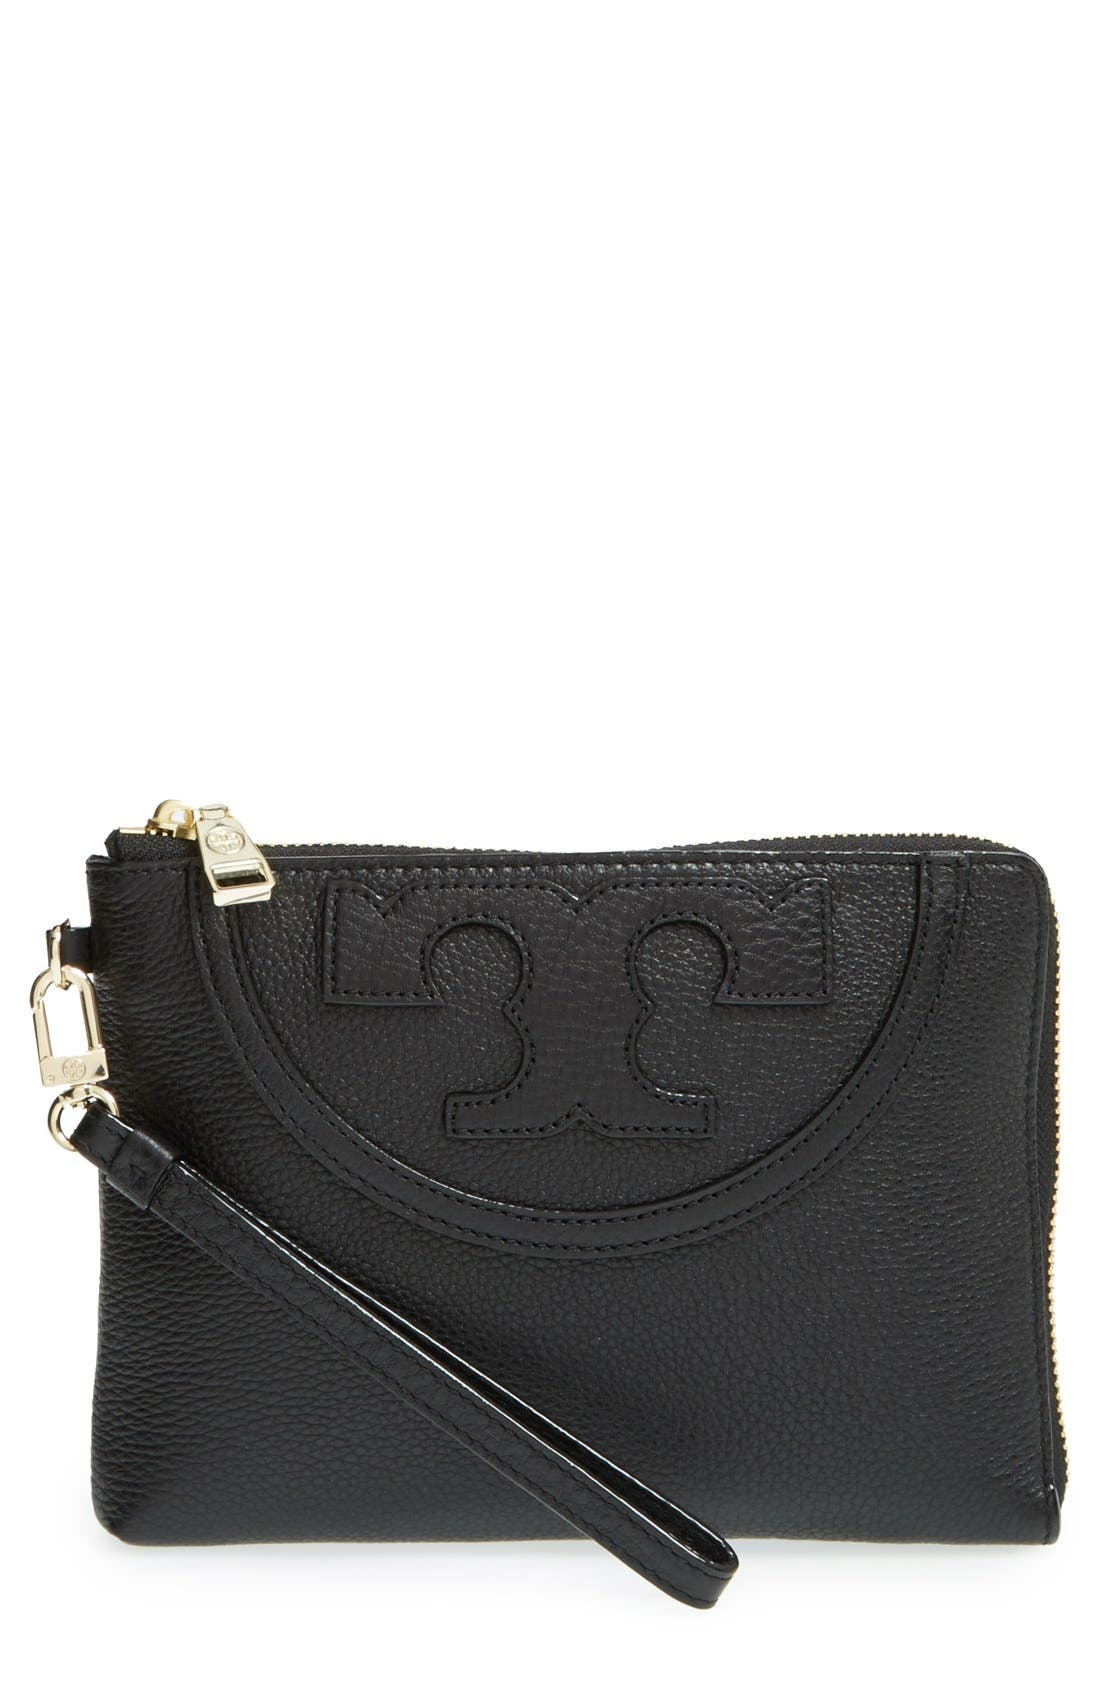 'Large All-T' Leather Wristlet,                             Main thumbnail 1, color,                             001